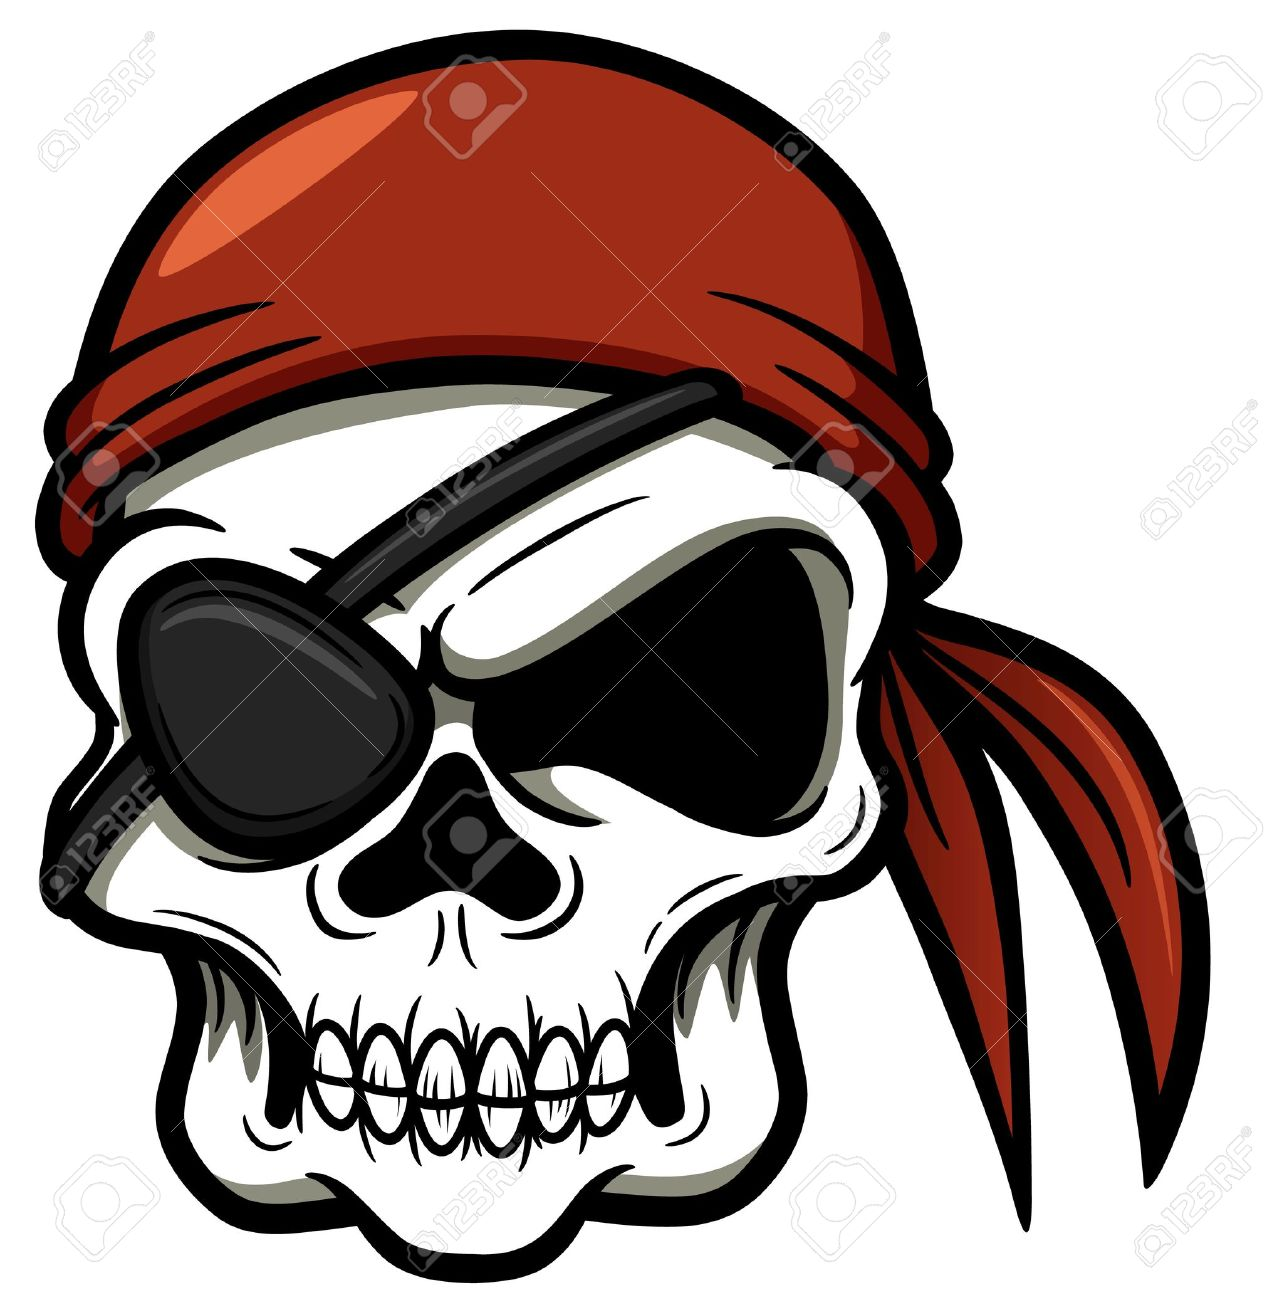 pirate skull drawing at getdrawings com free for